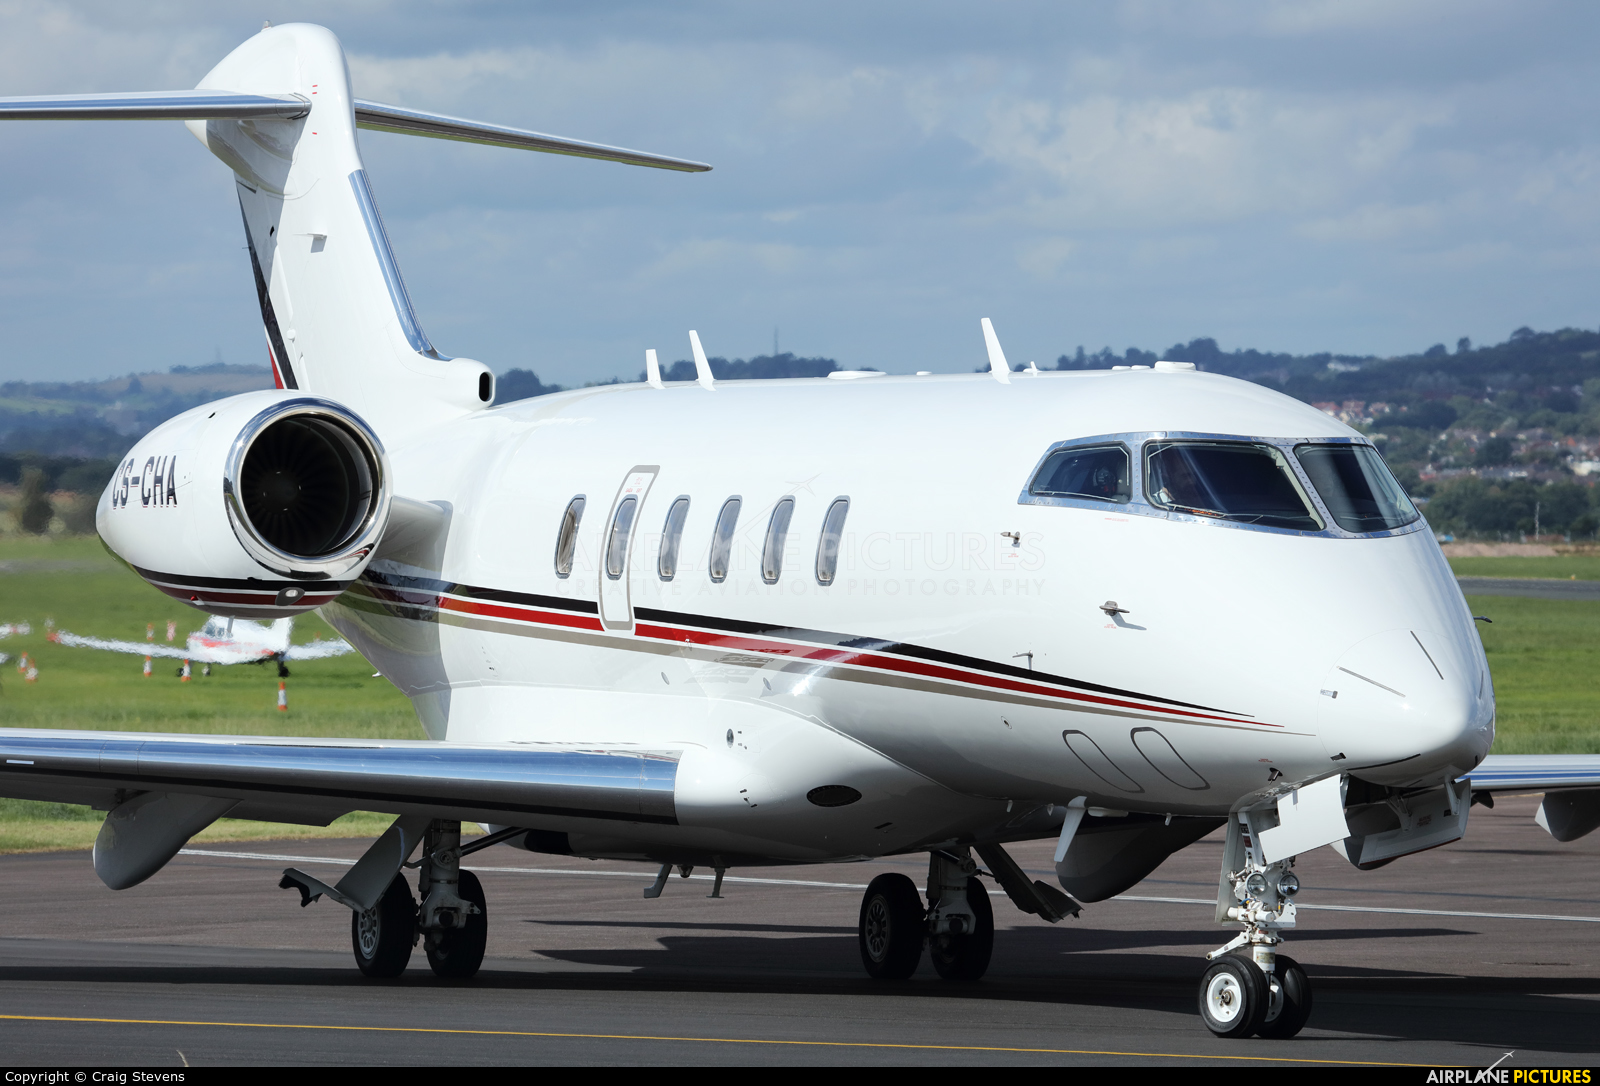 NetJets Europe (Portugal) CS-CHA aircraft at Exeter